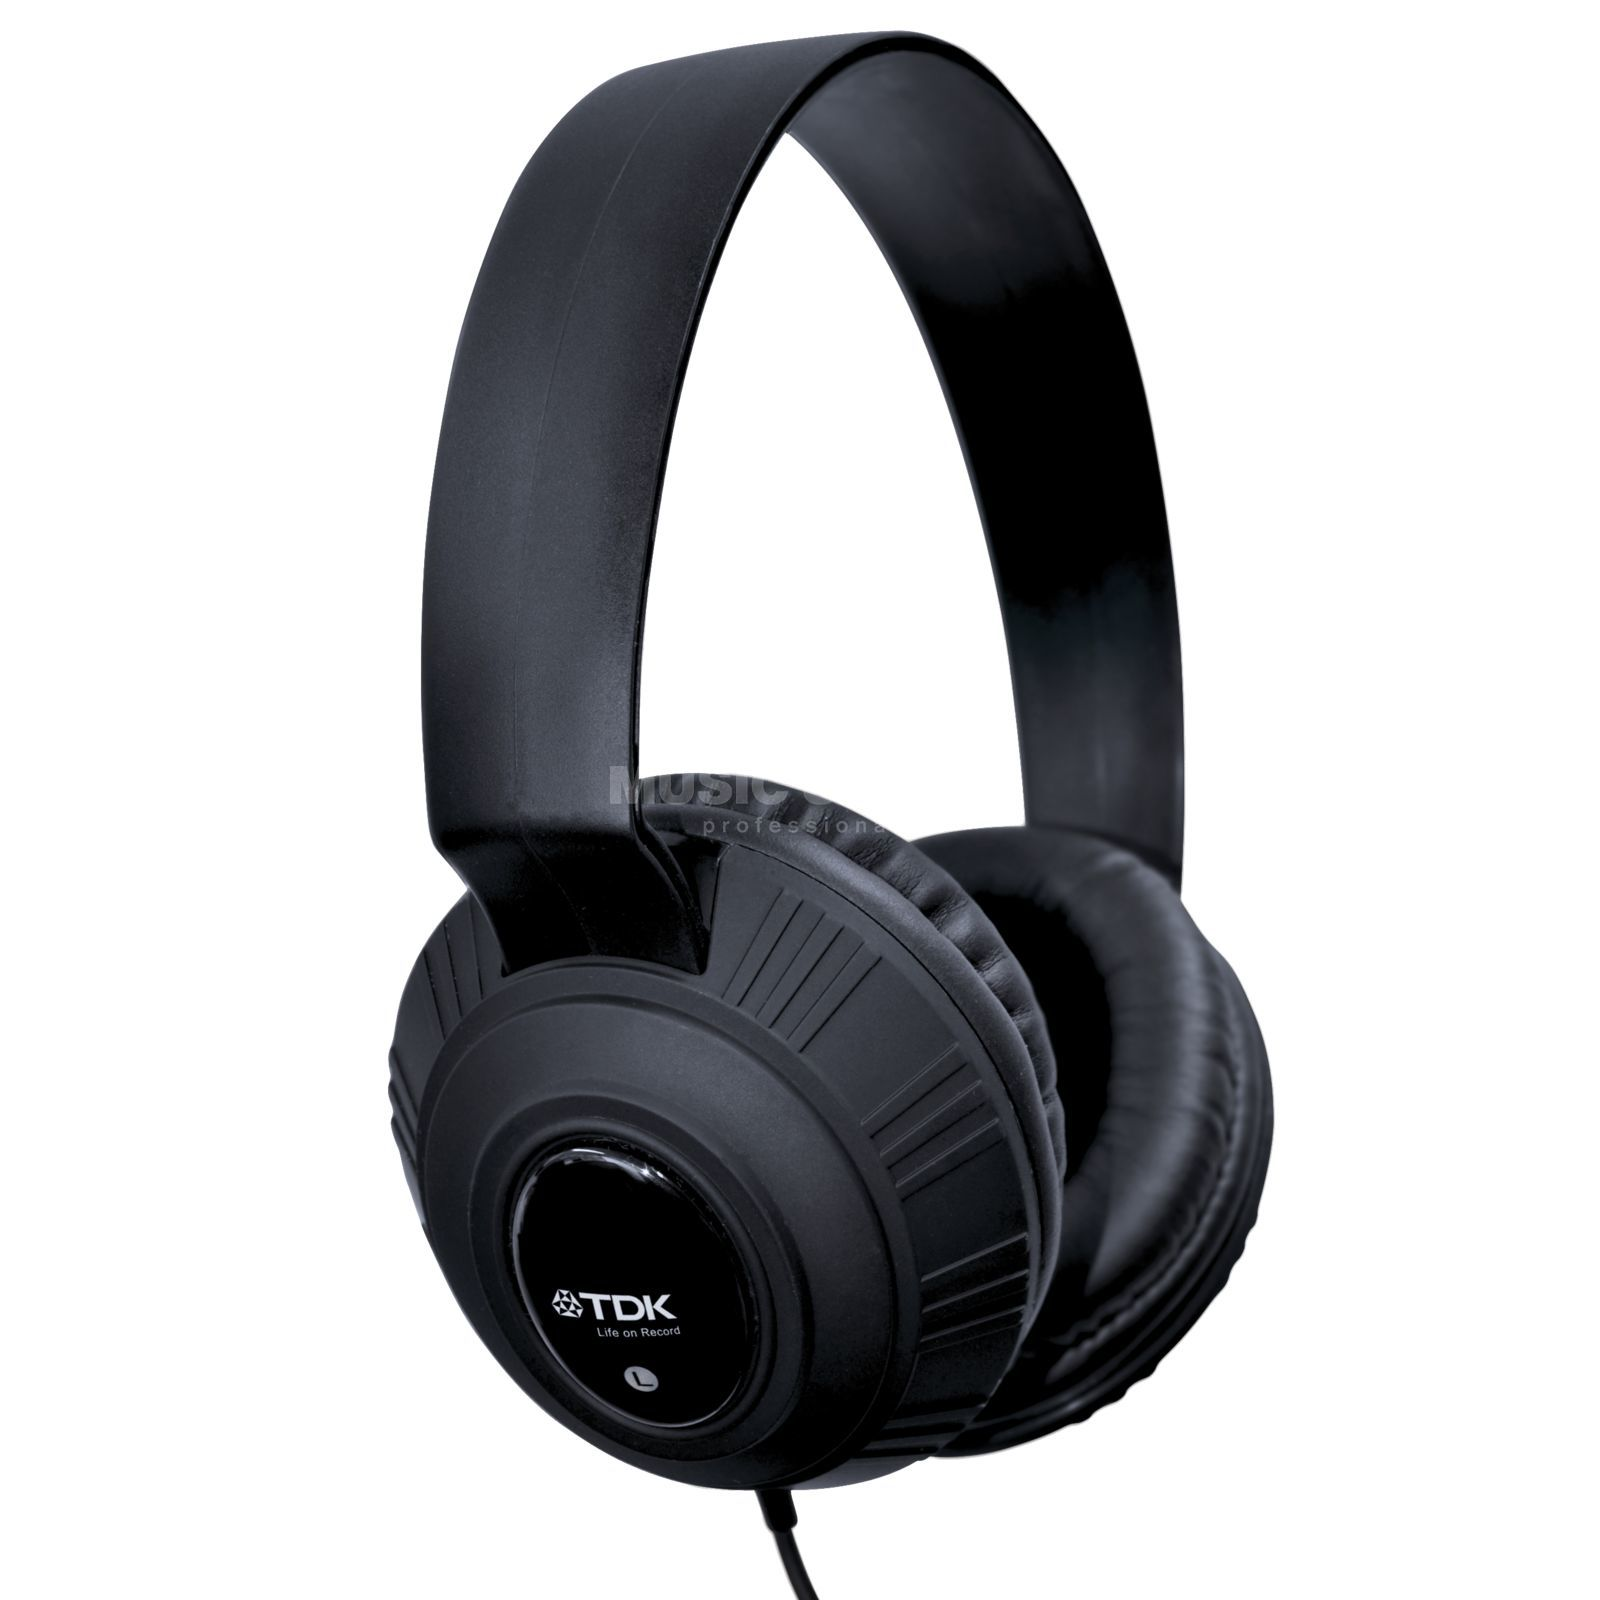 TDK MP-100 Headphone black, 1.2m, 3.5mm Jack Produktbillede